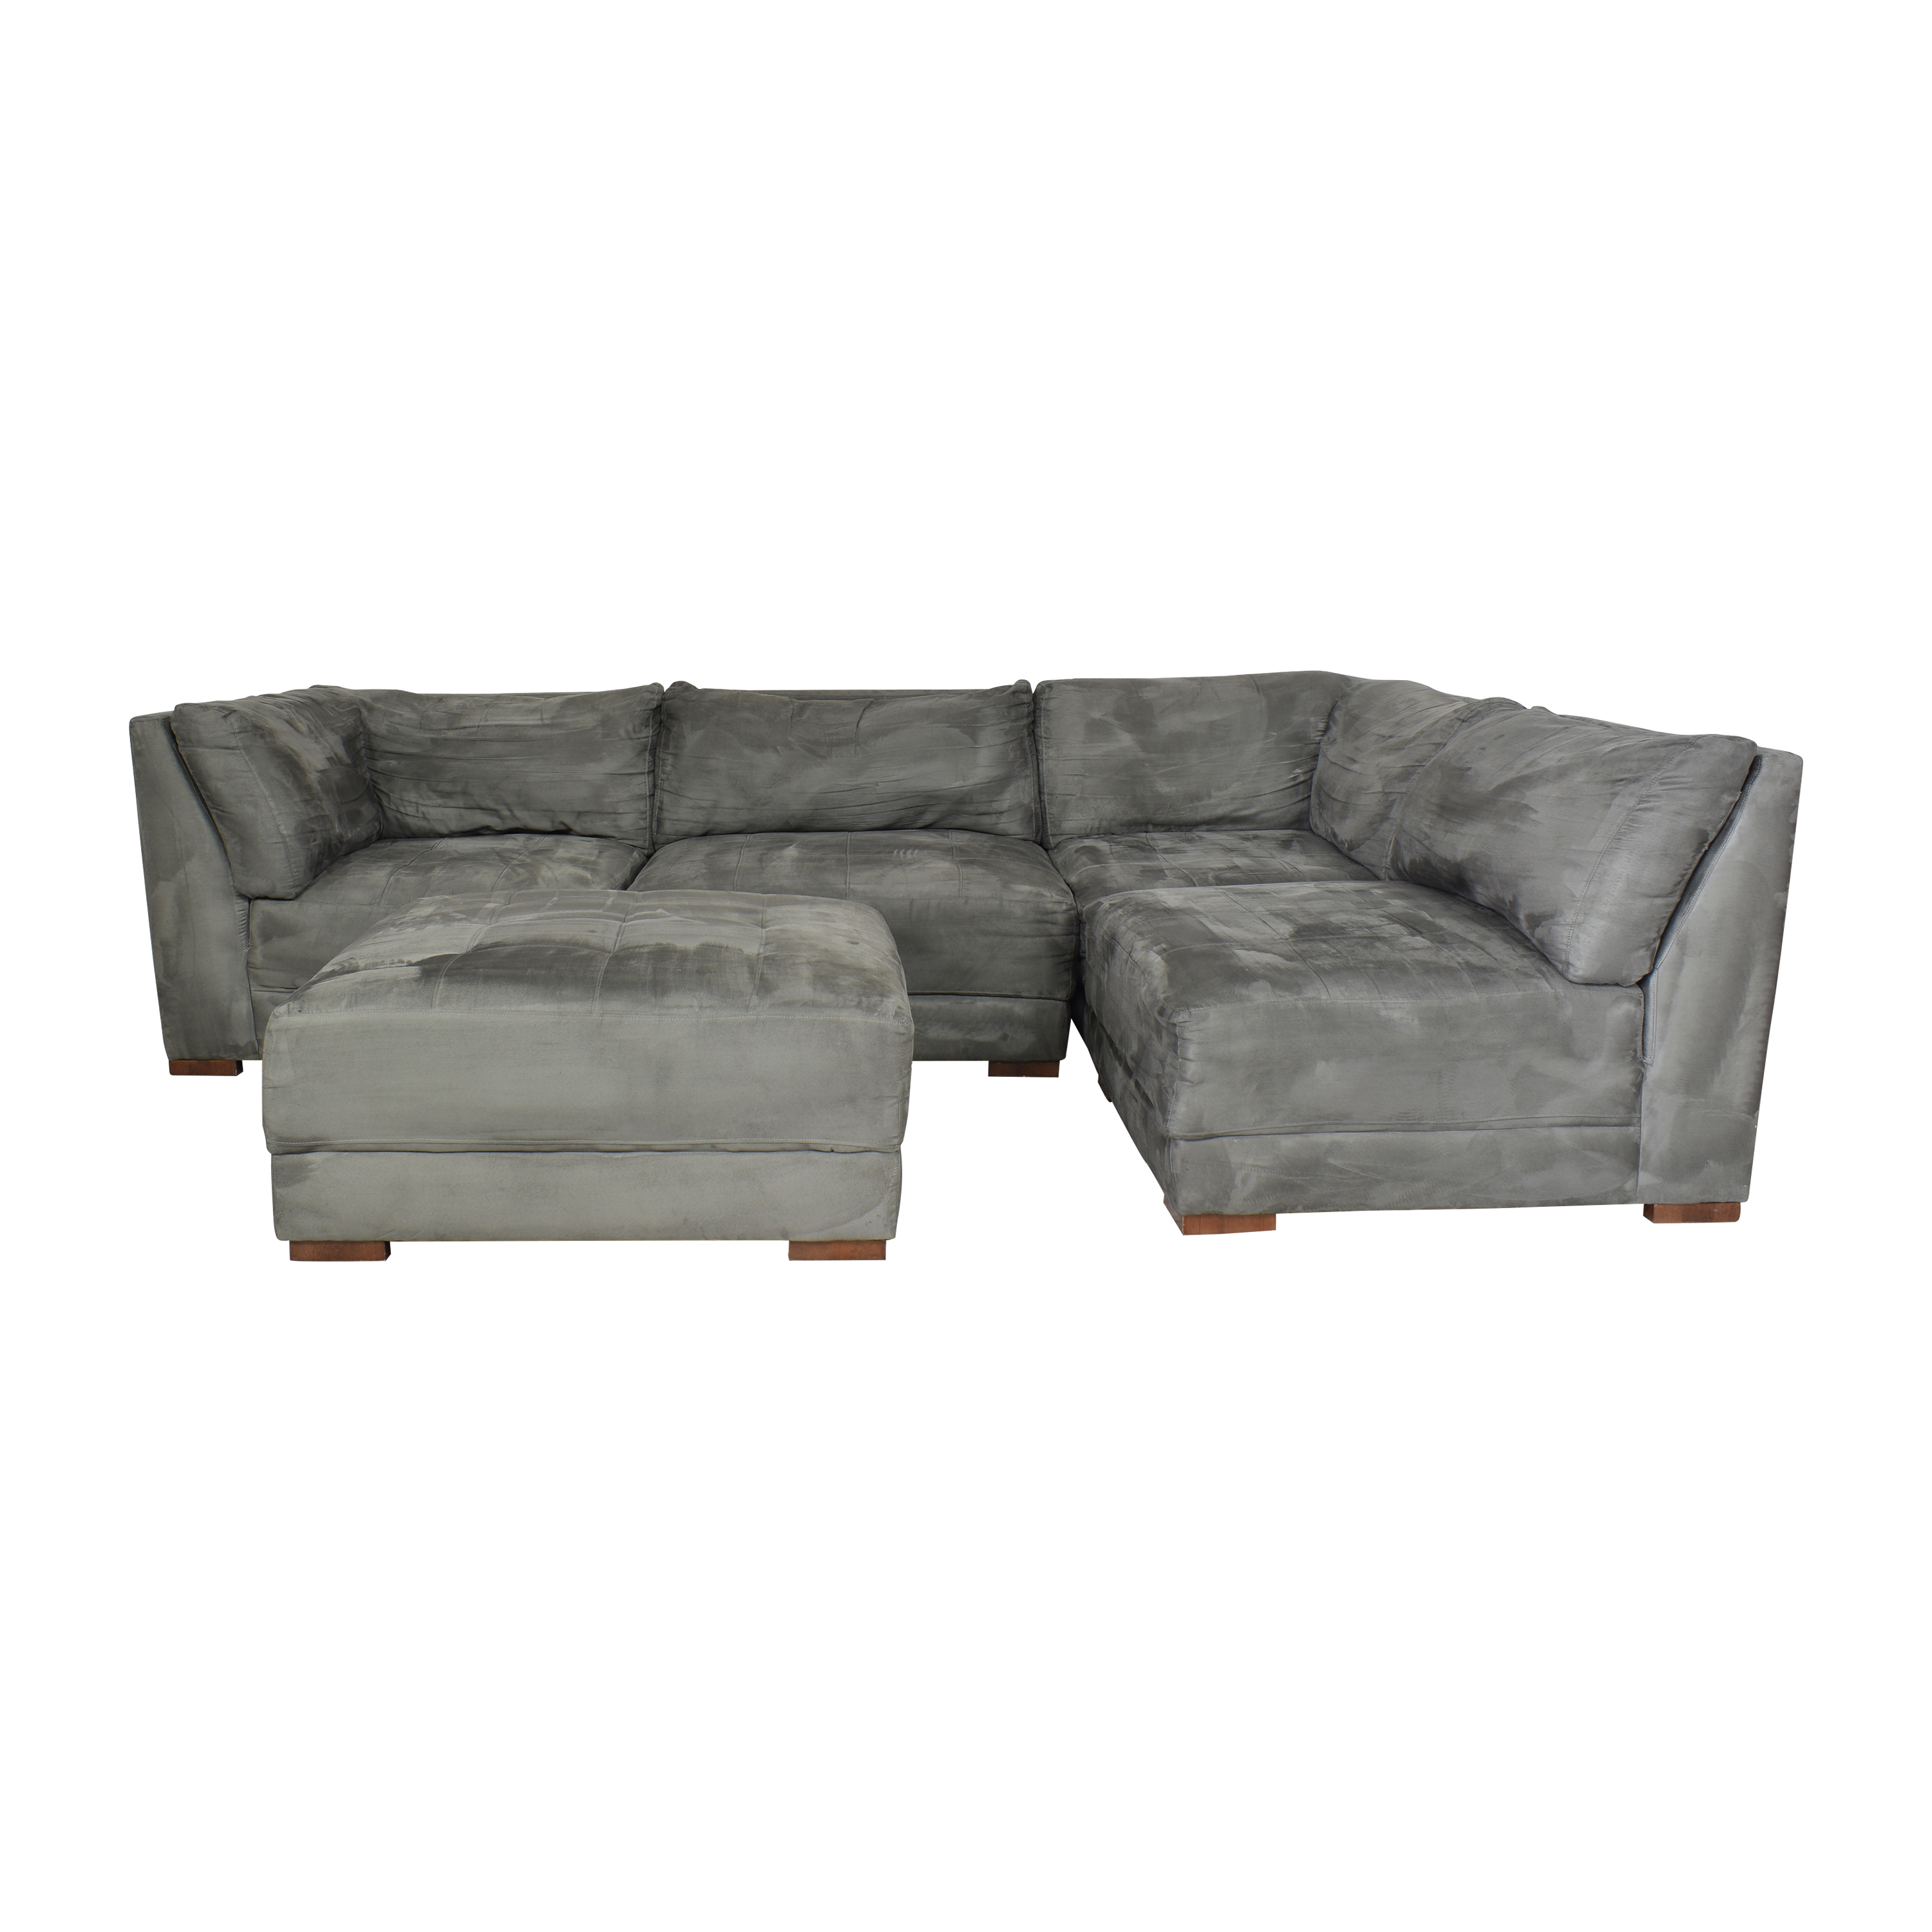 American Signature American Signature Sectional with Ottoman dimensions